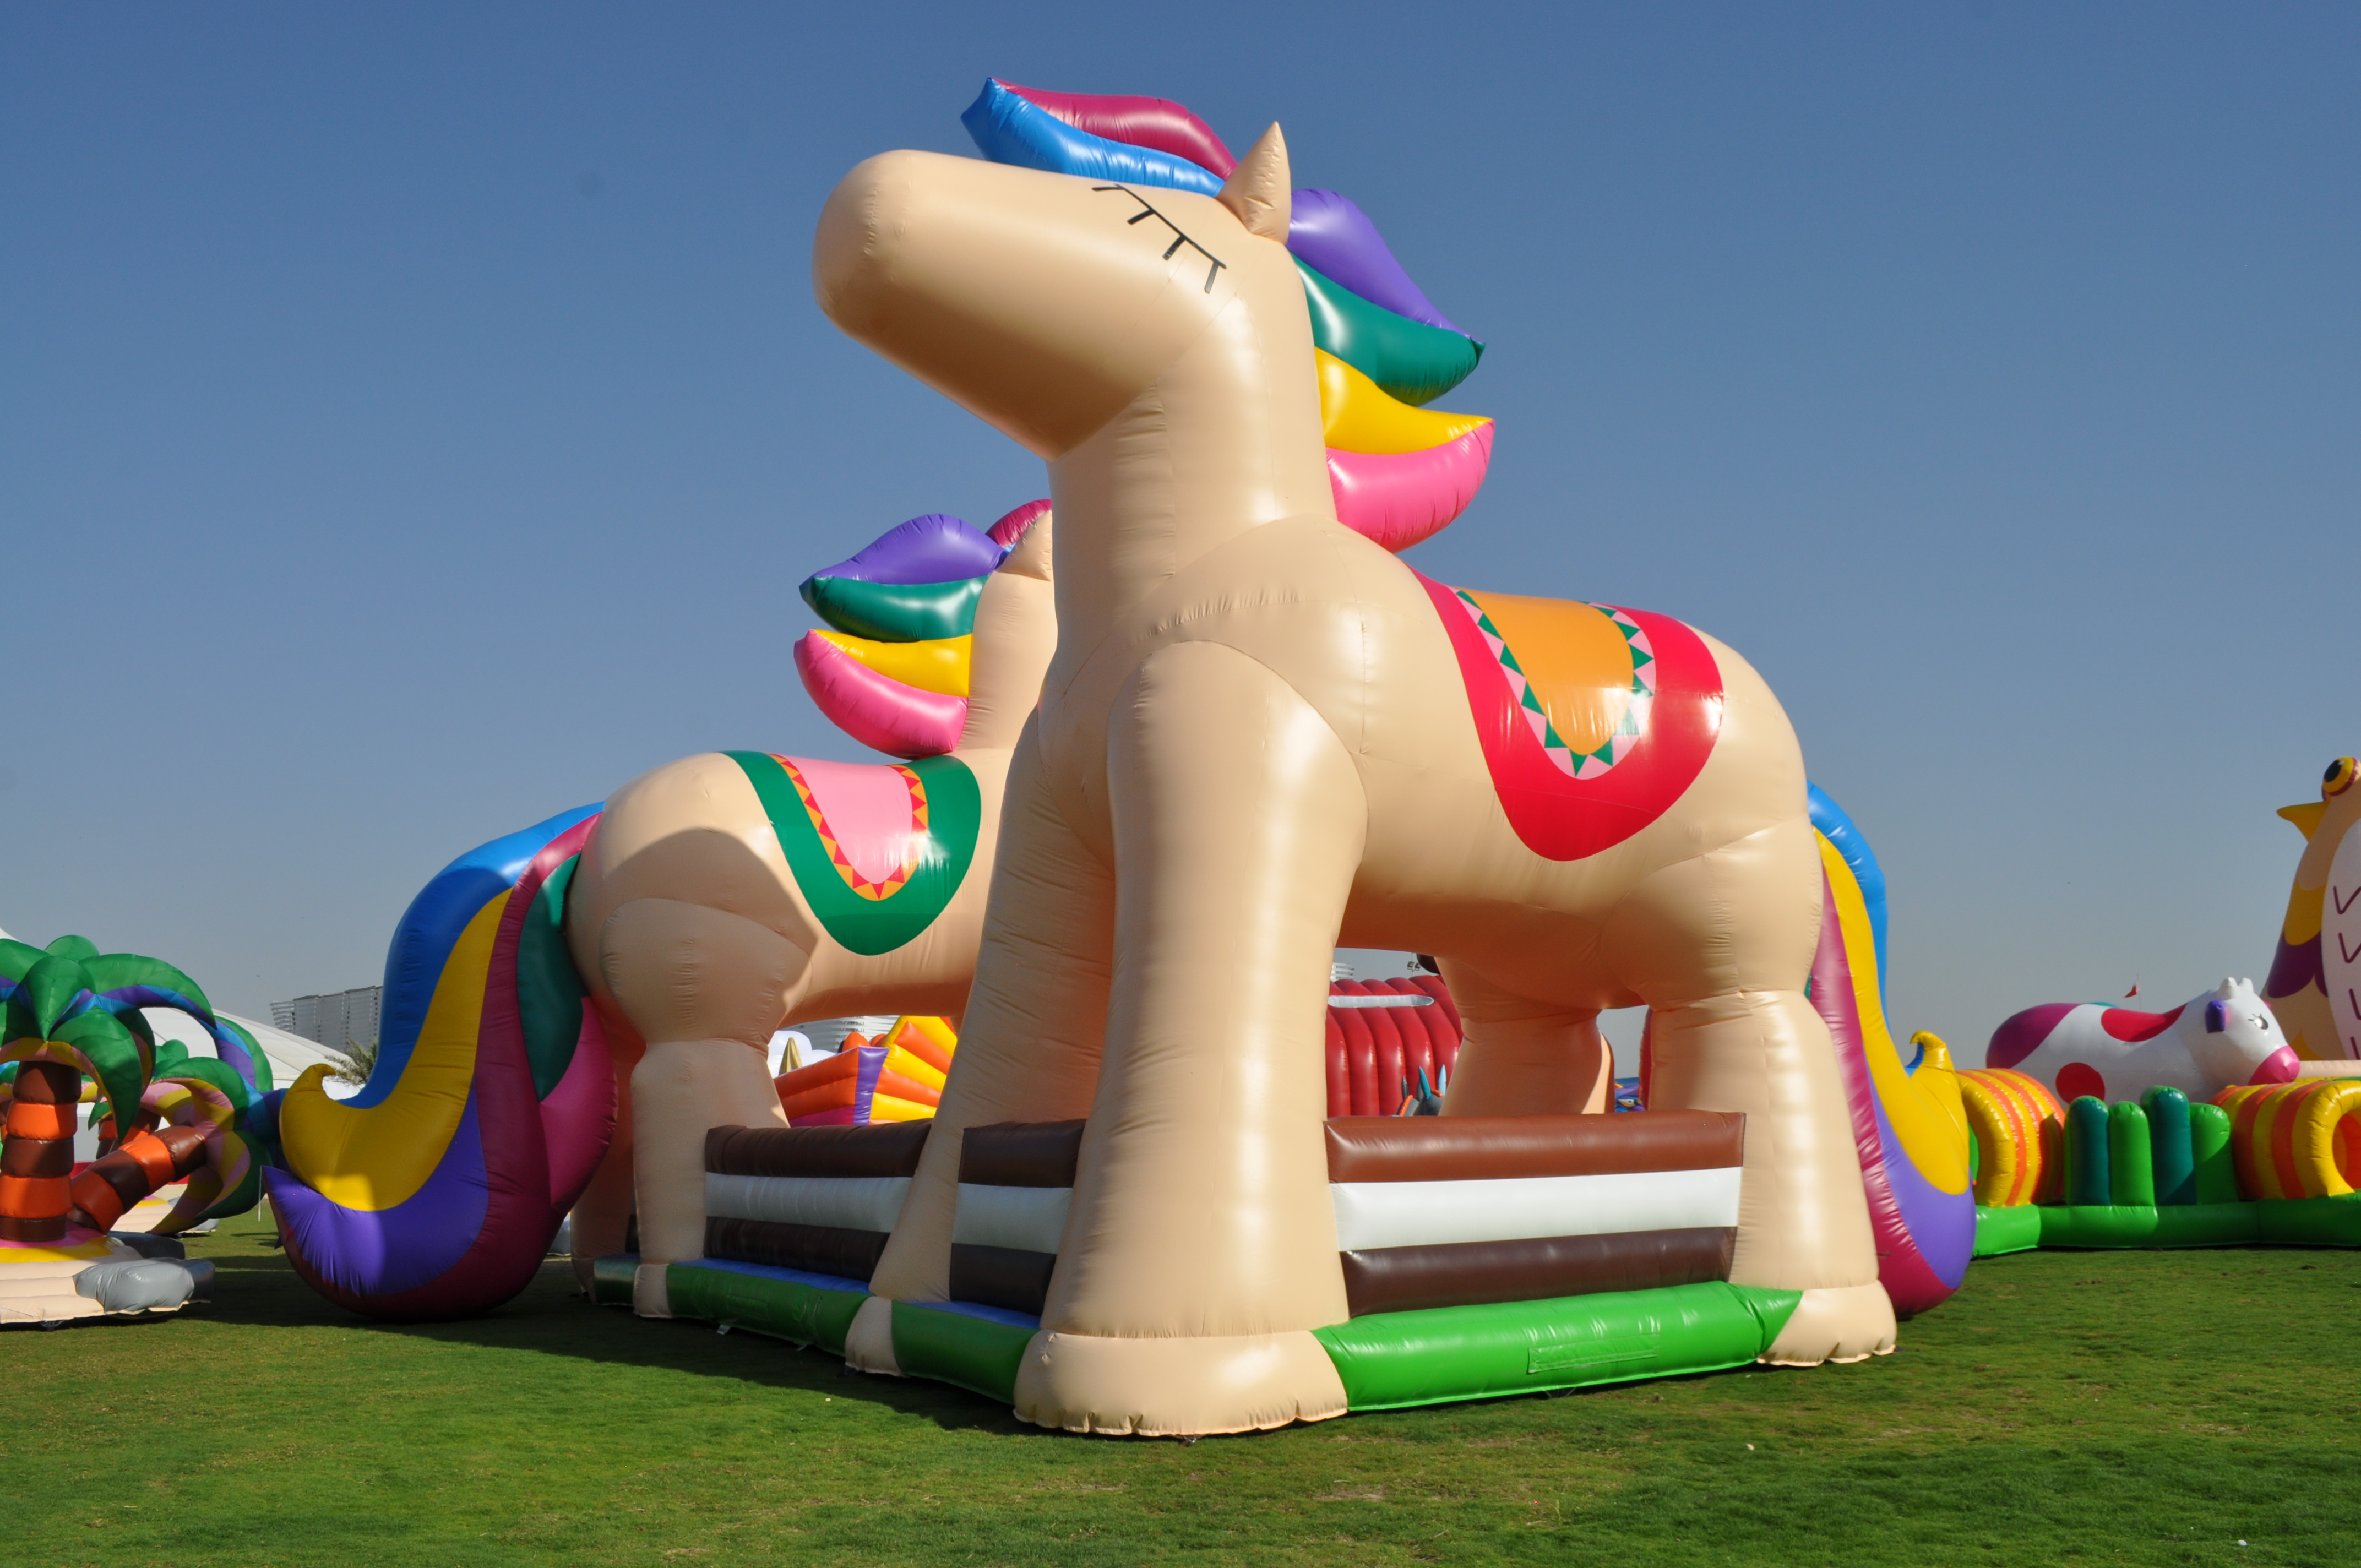 Al-Areen Inflatable Park